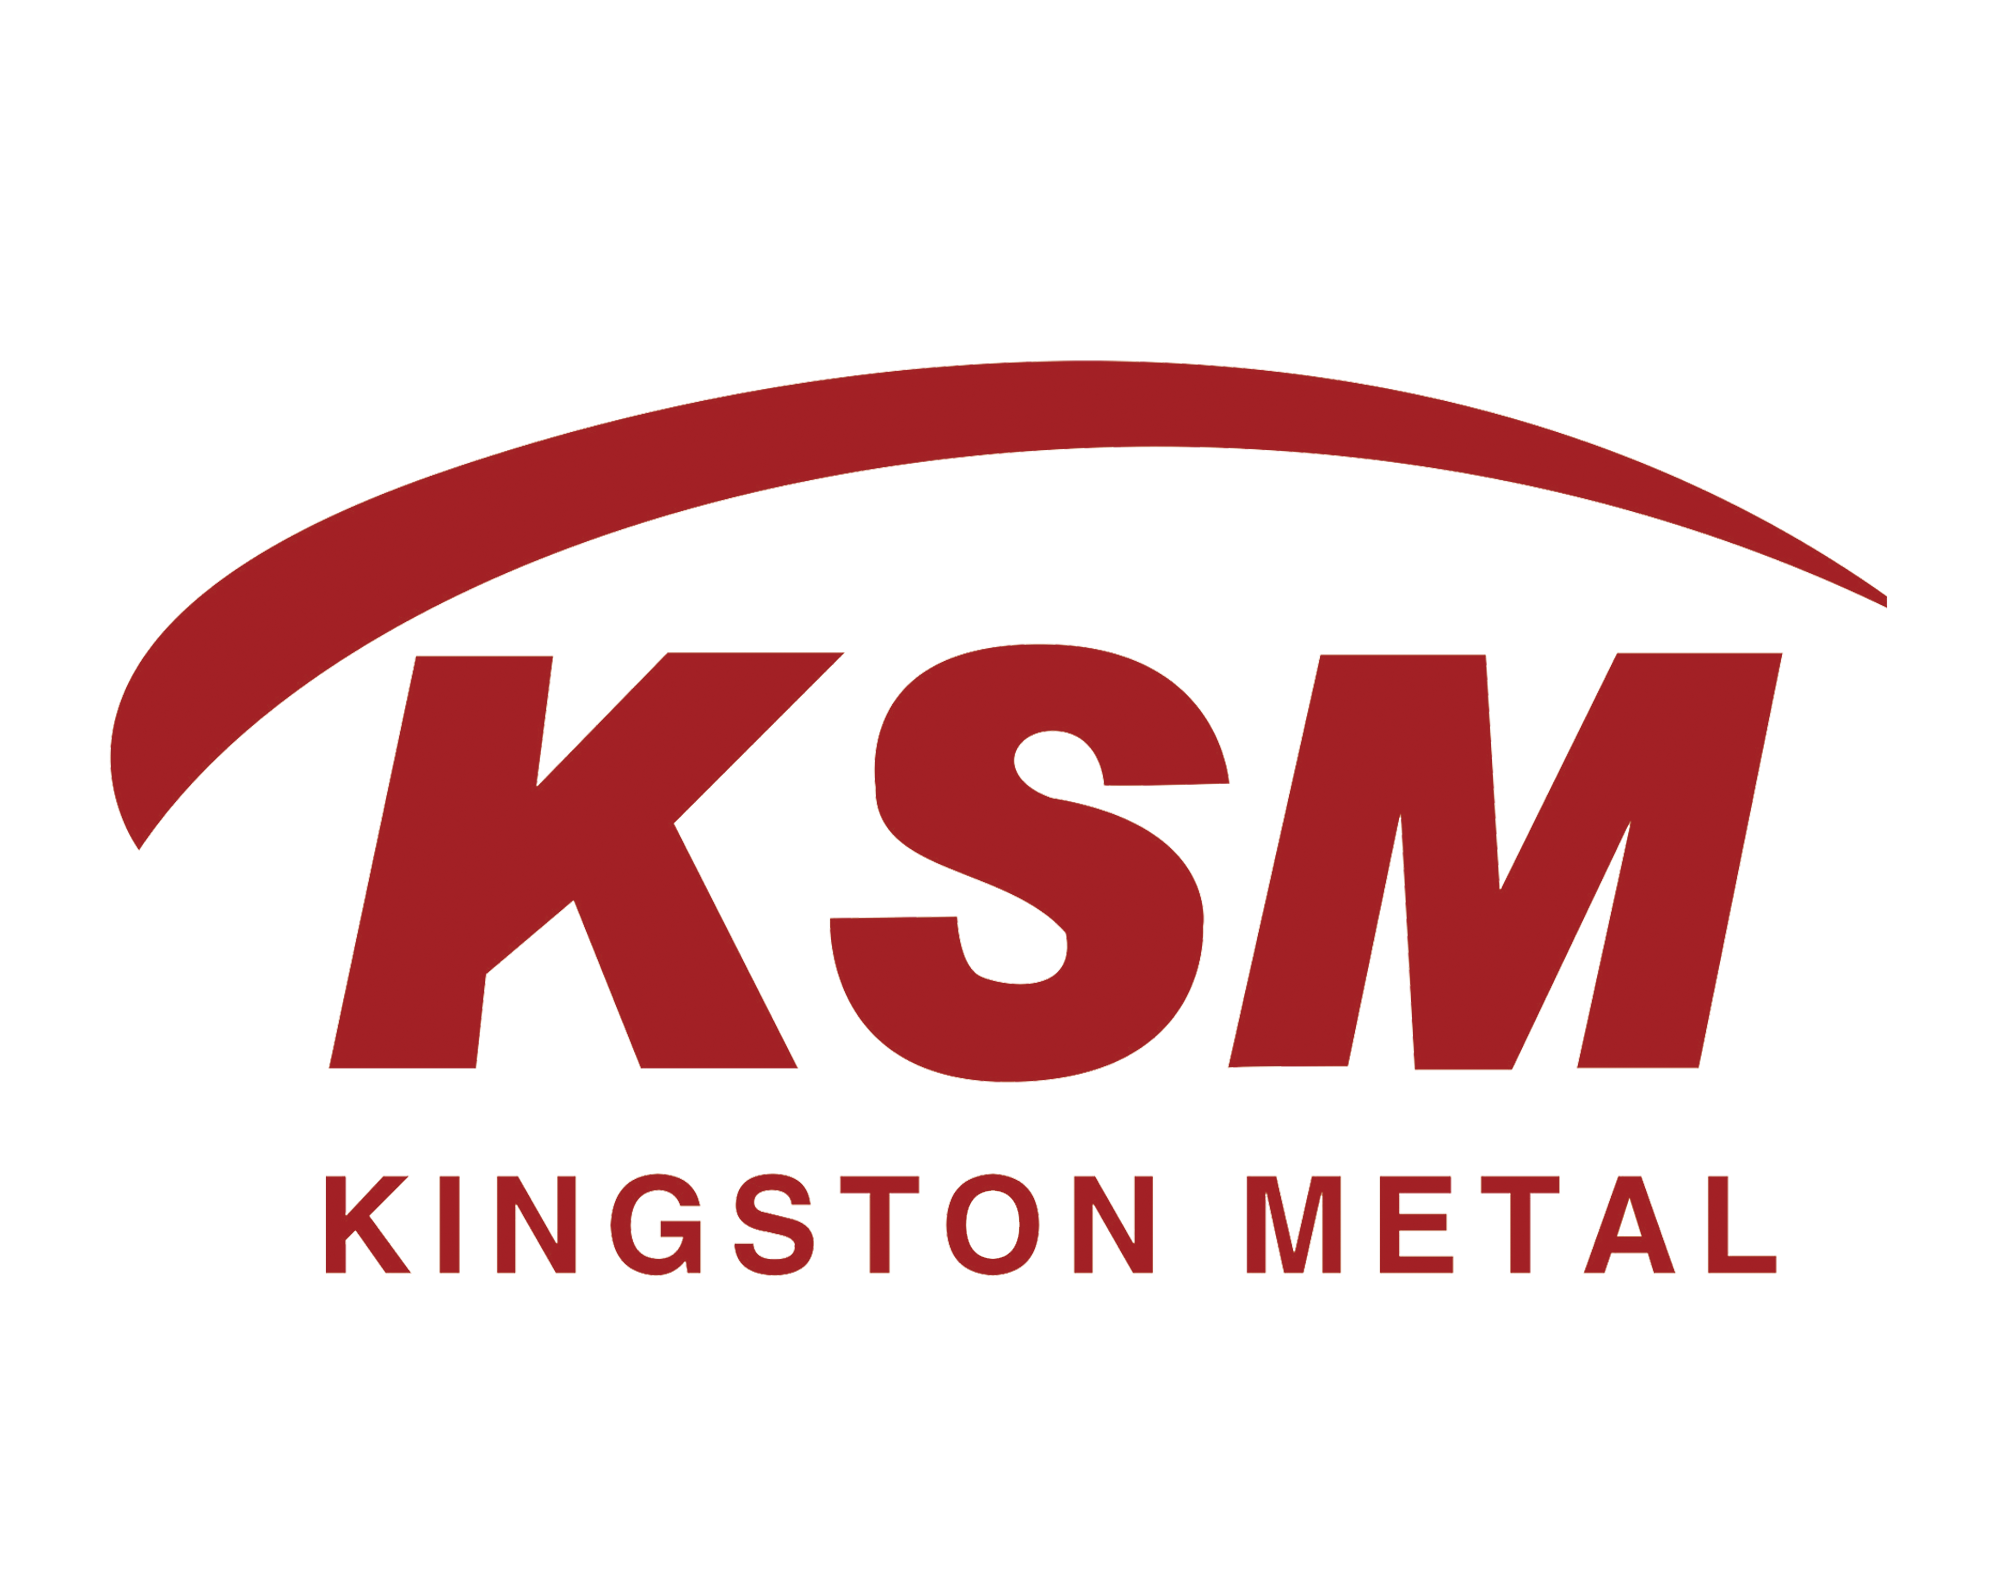 TIANJIN KINGSTON METAL PRODUCT CO.,LTD